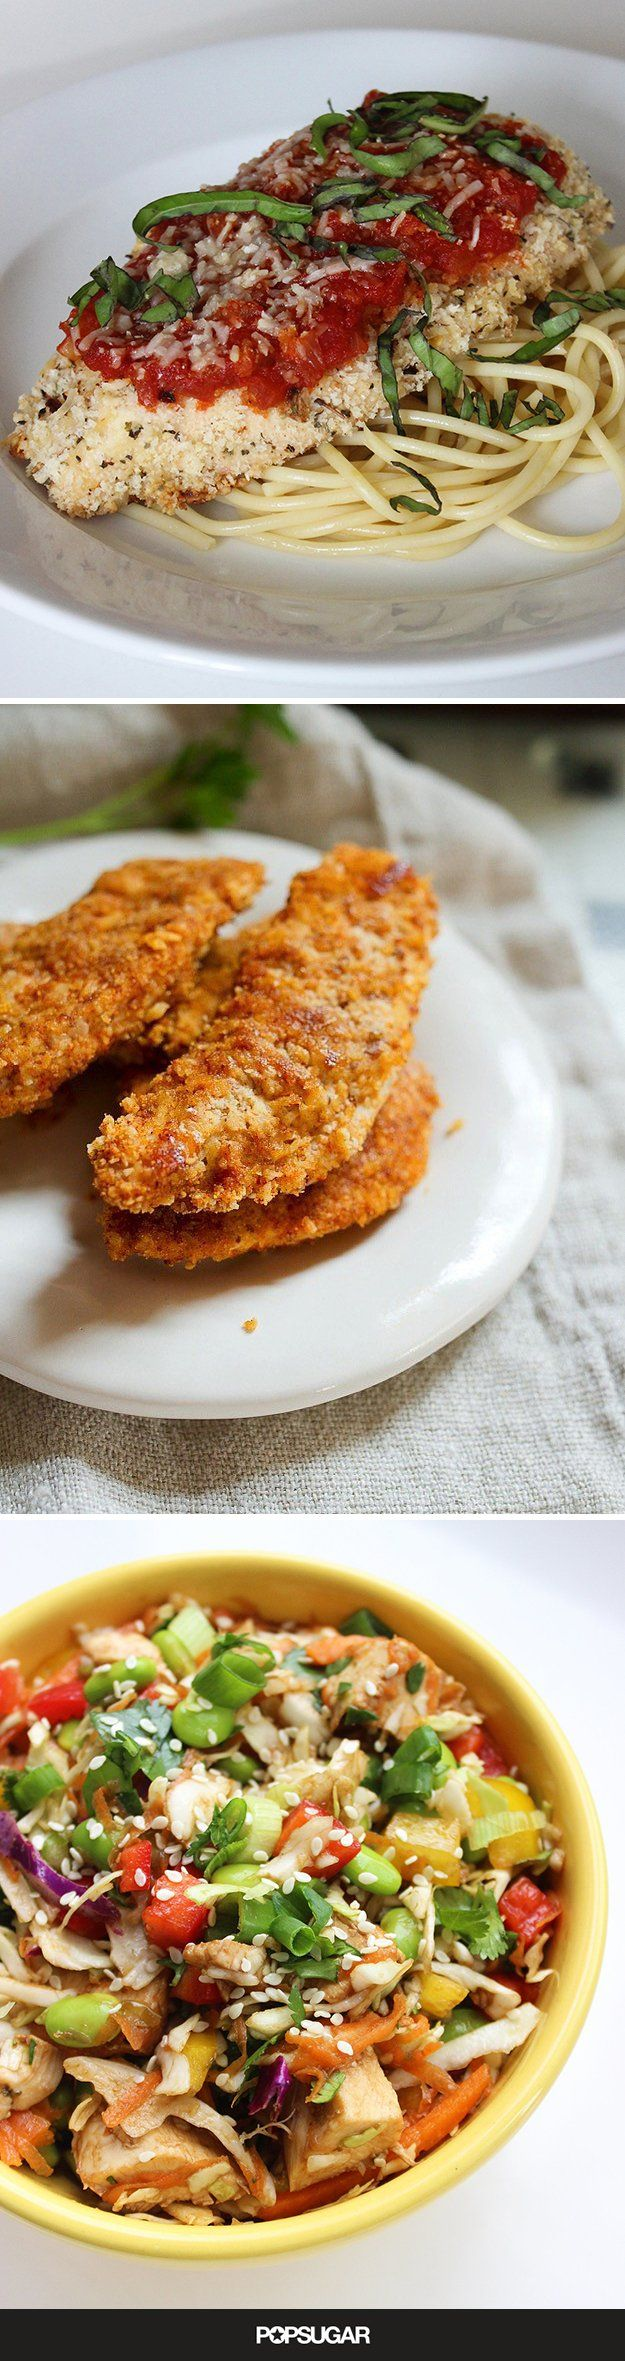 12 Healthy Chicken Recipes to Help You Lose Weight